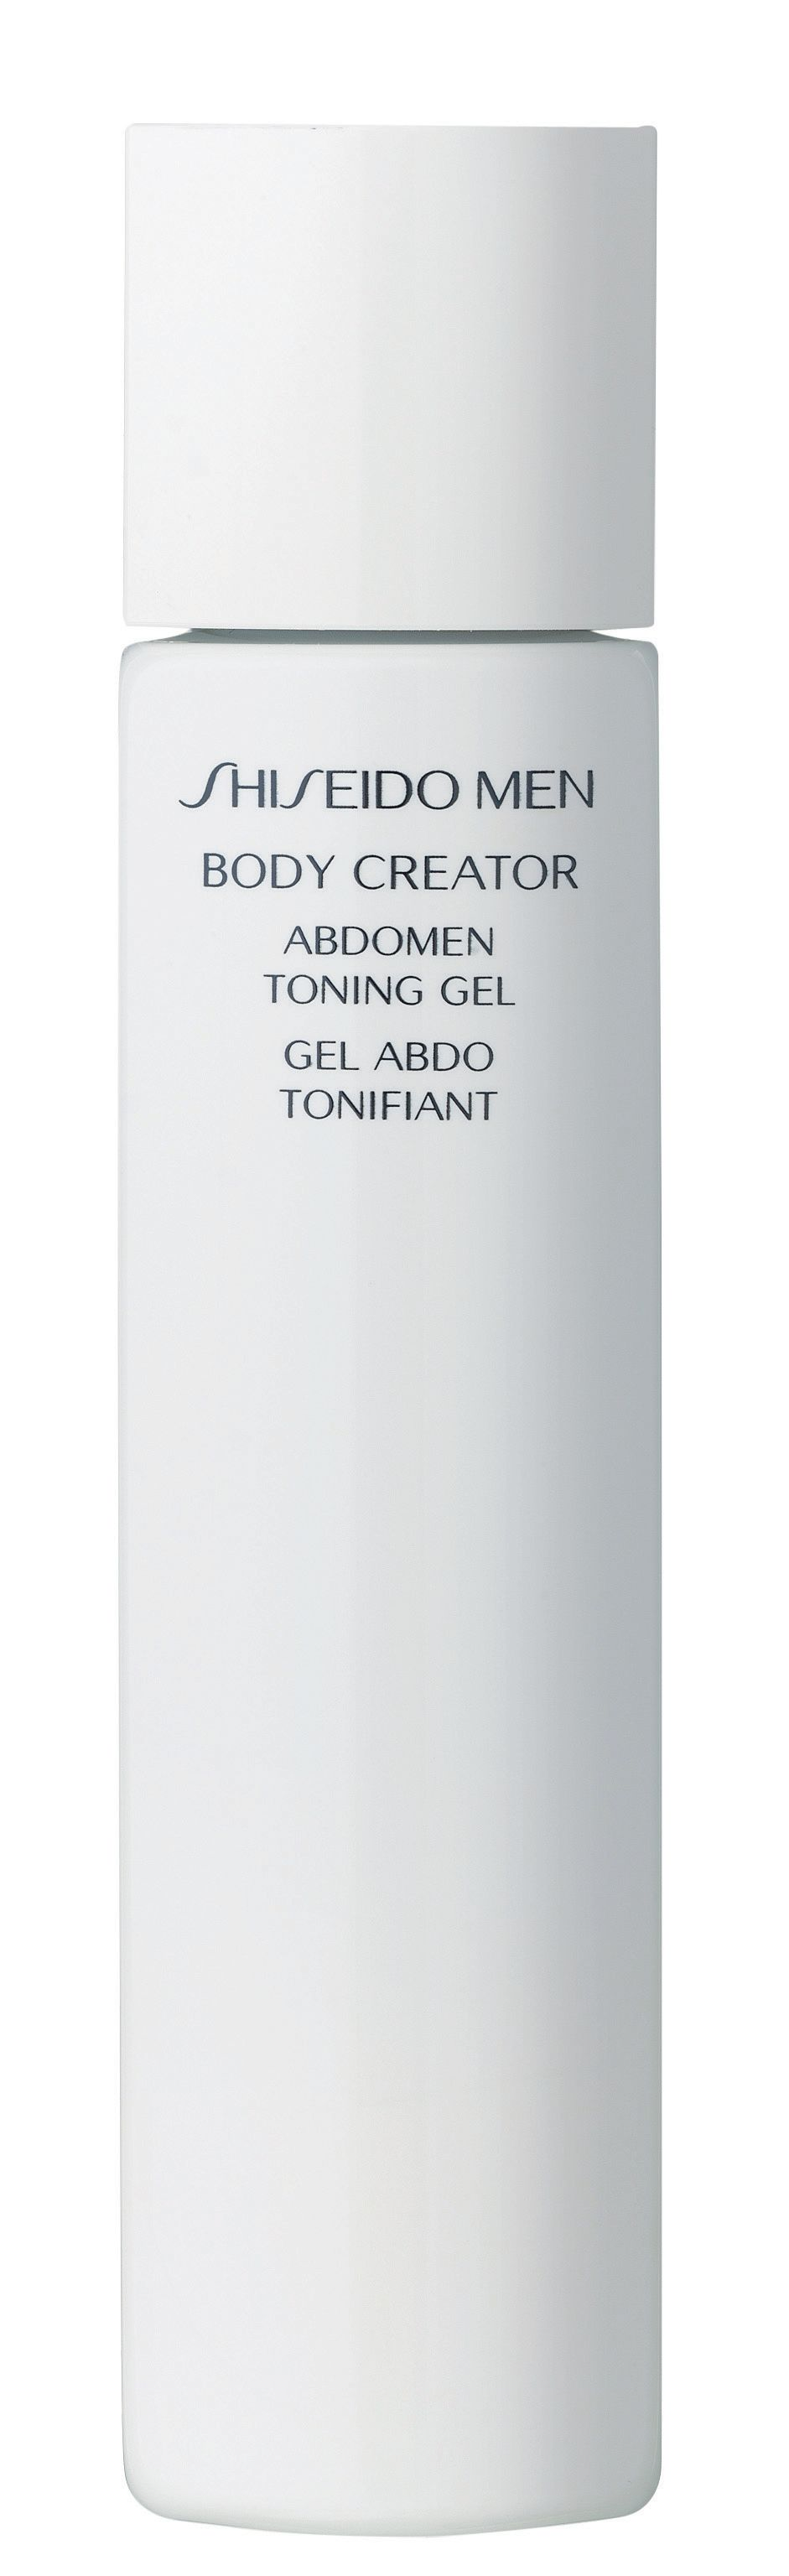 Body Creator Abdomen Toning Gel For Men